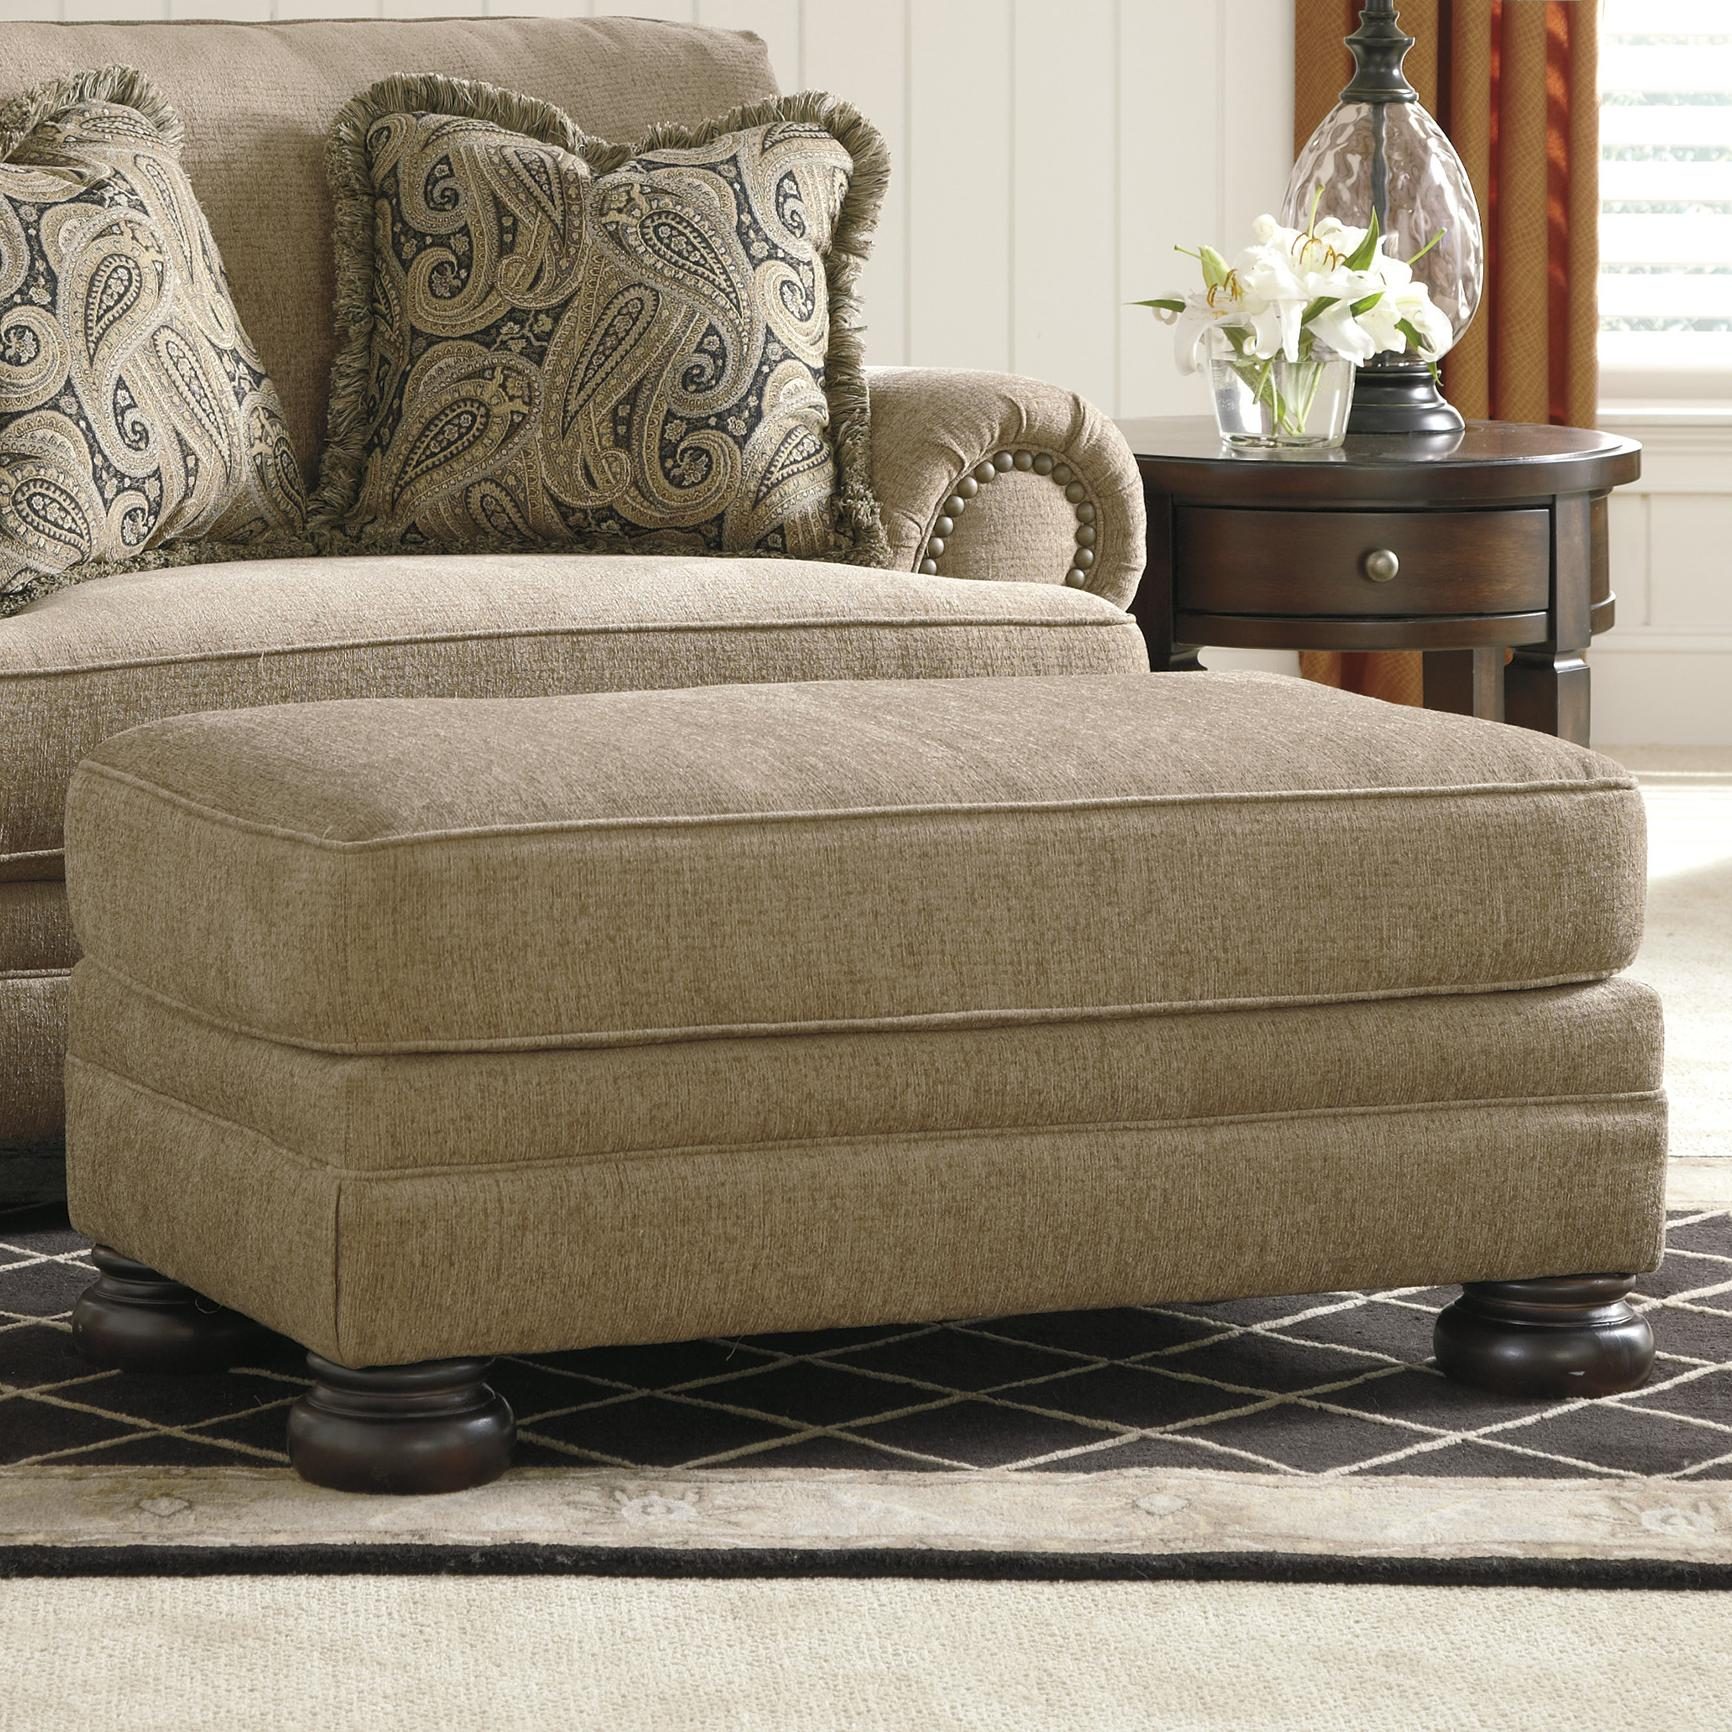 Signature Design by Ashley Keereel - Sand Ottoman - Item Number: 3820014